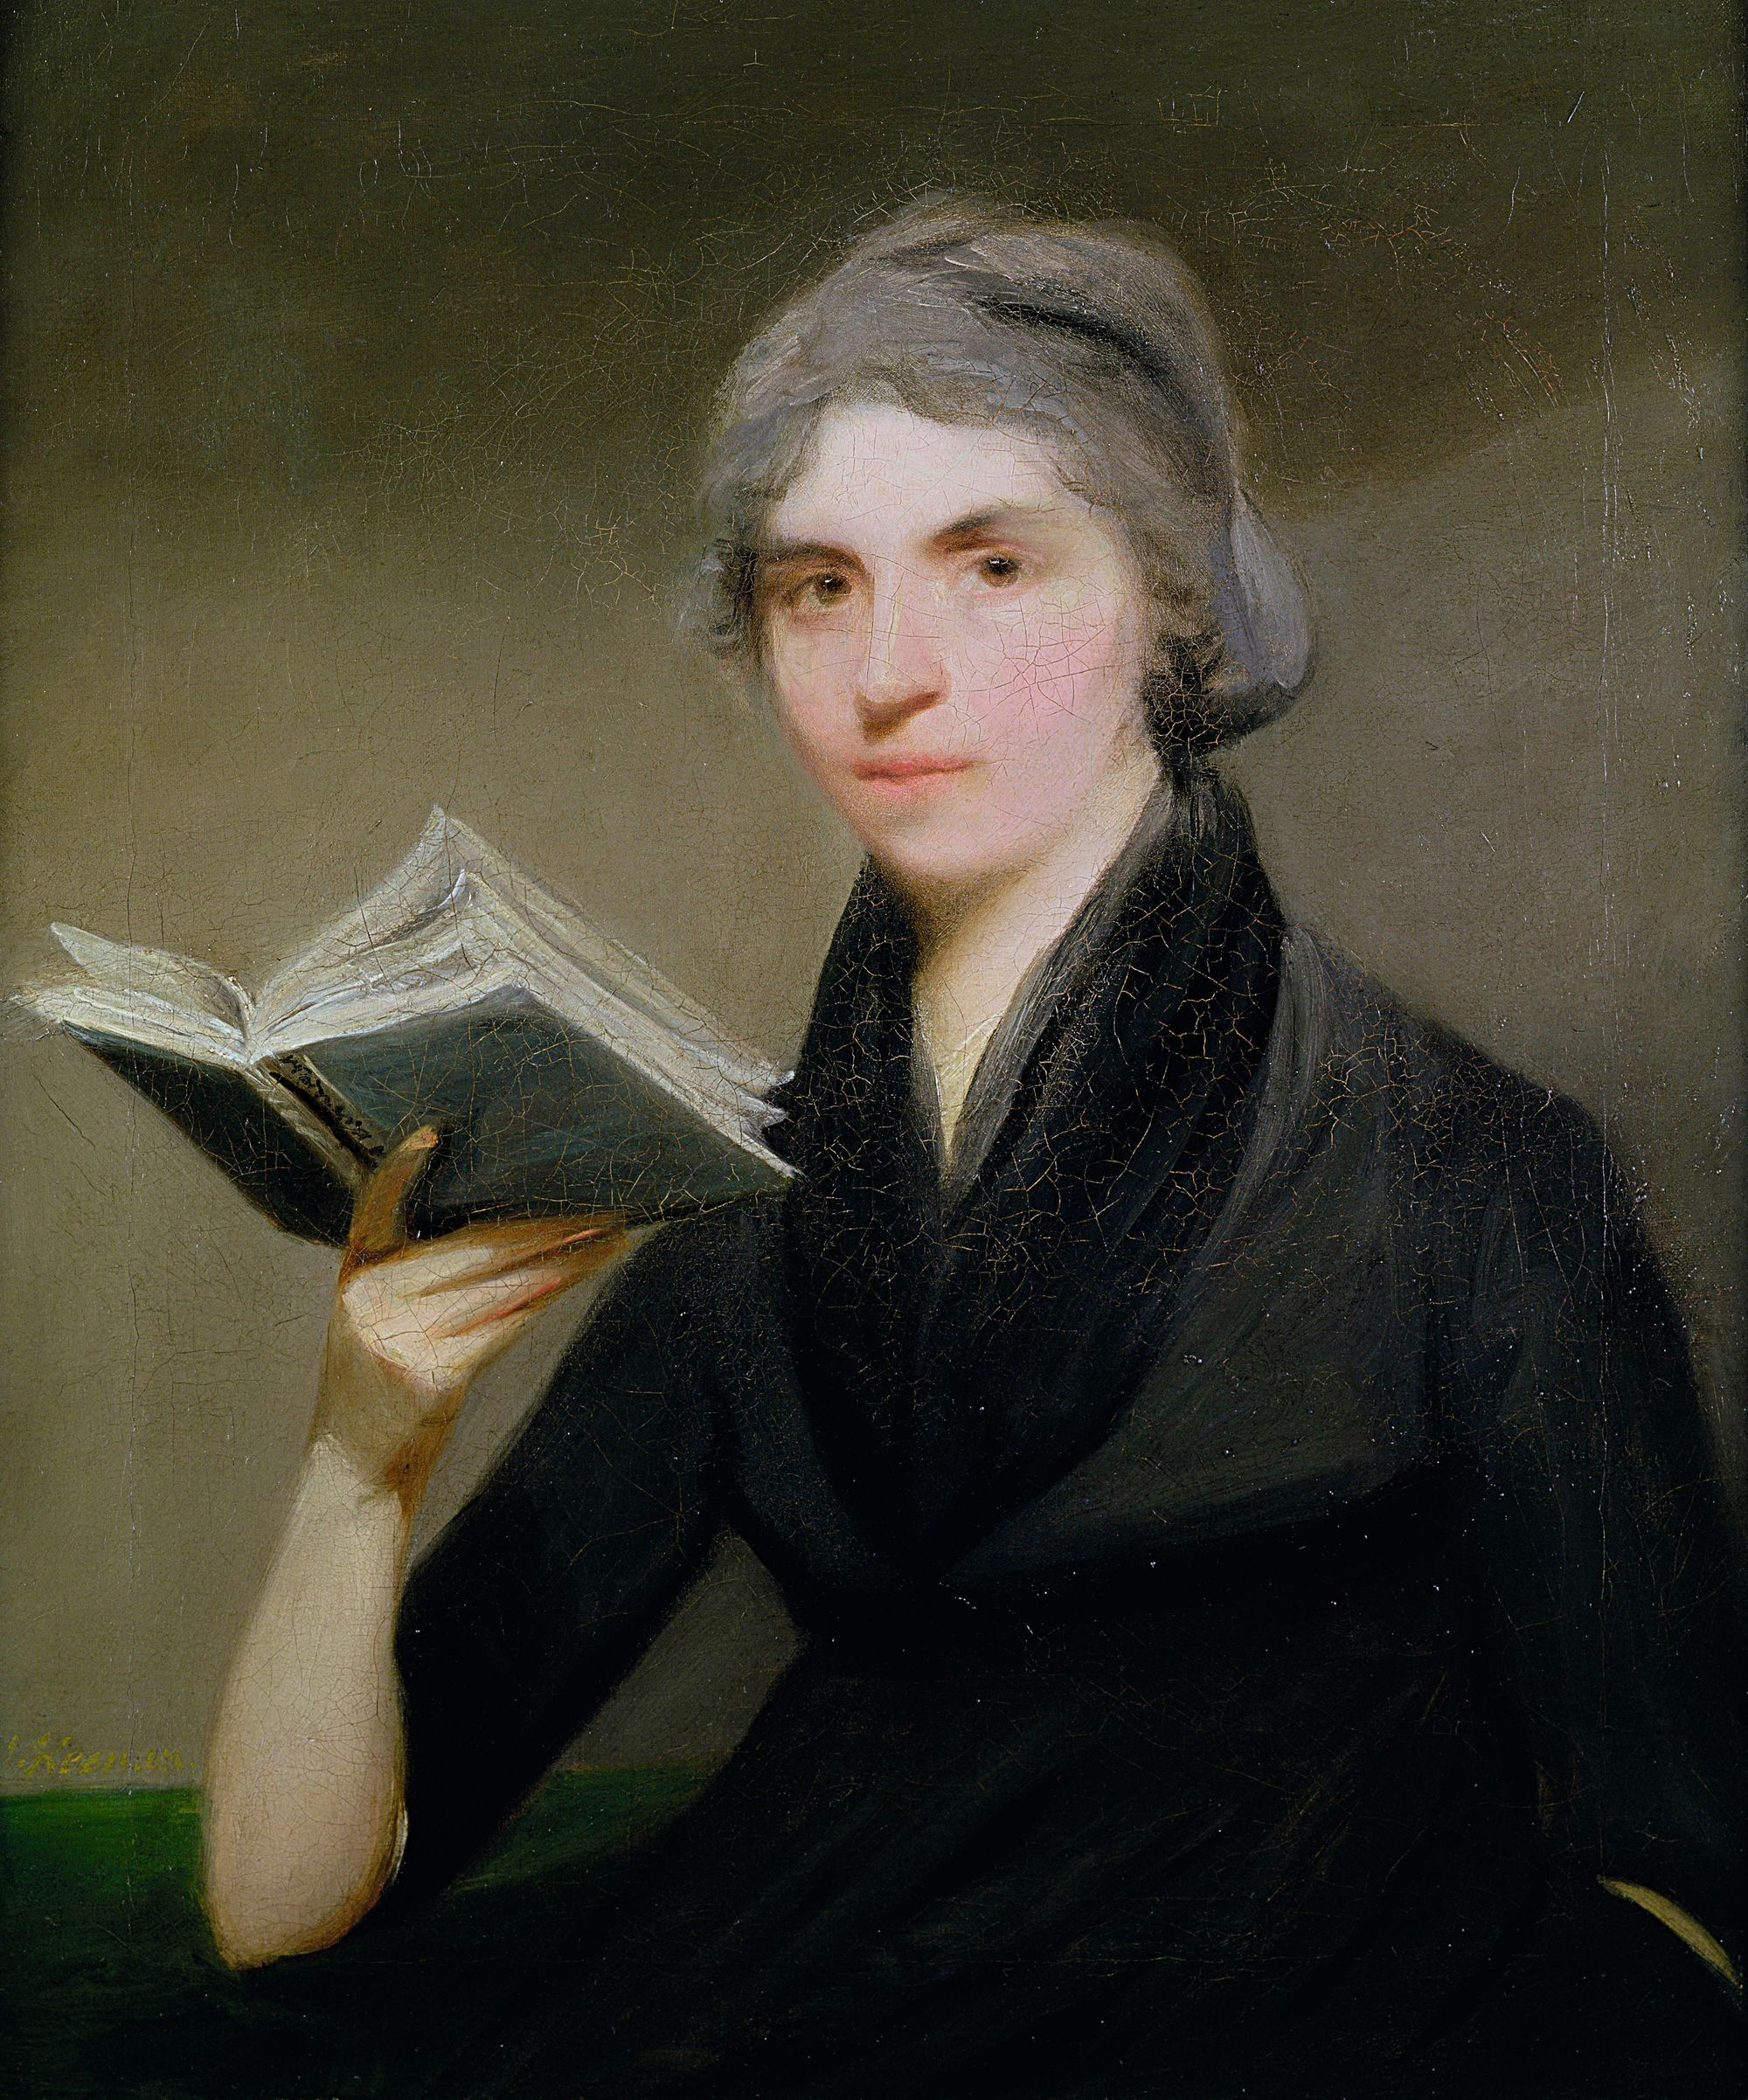 John Keenan, Portrait de Mary Wollstonecraft, 1787, collection privée